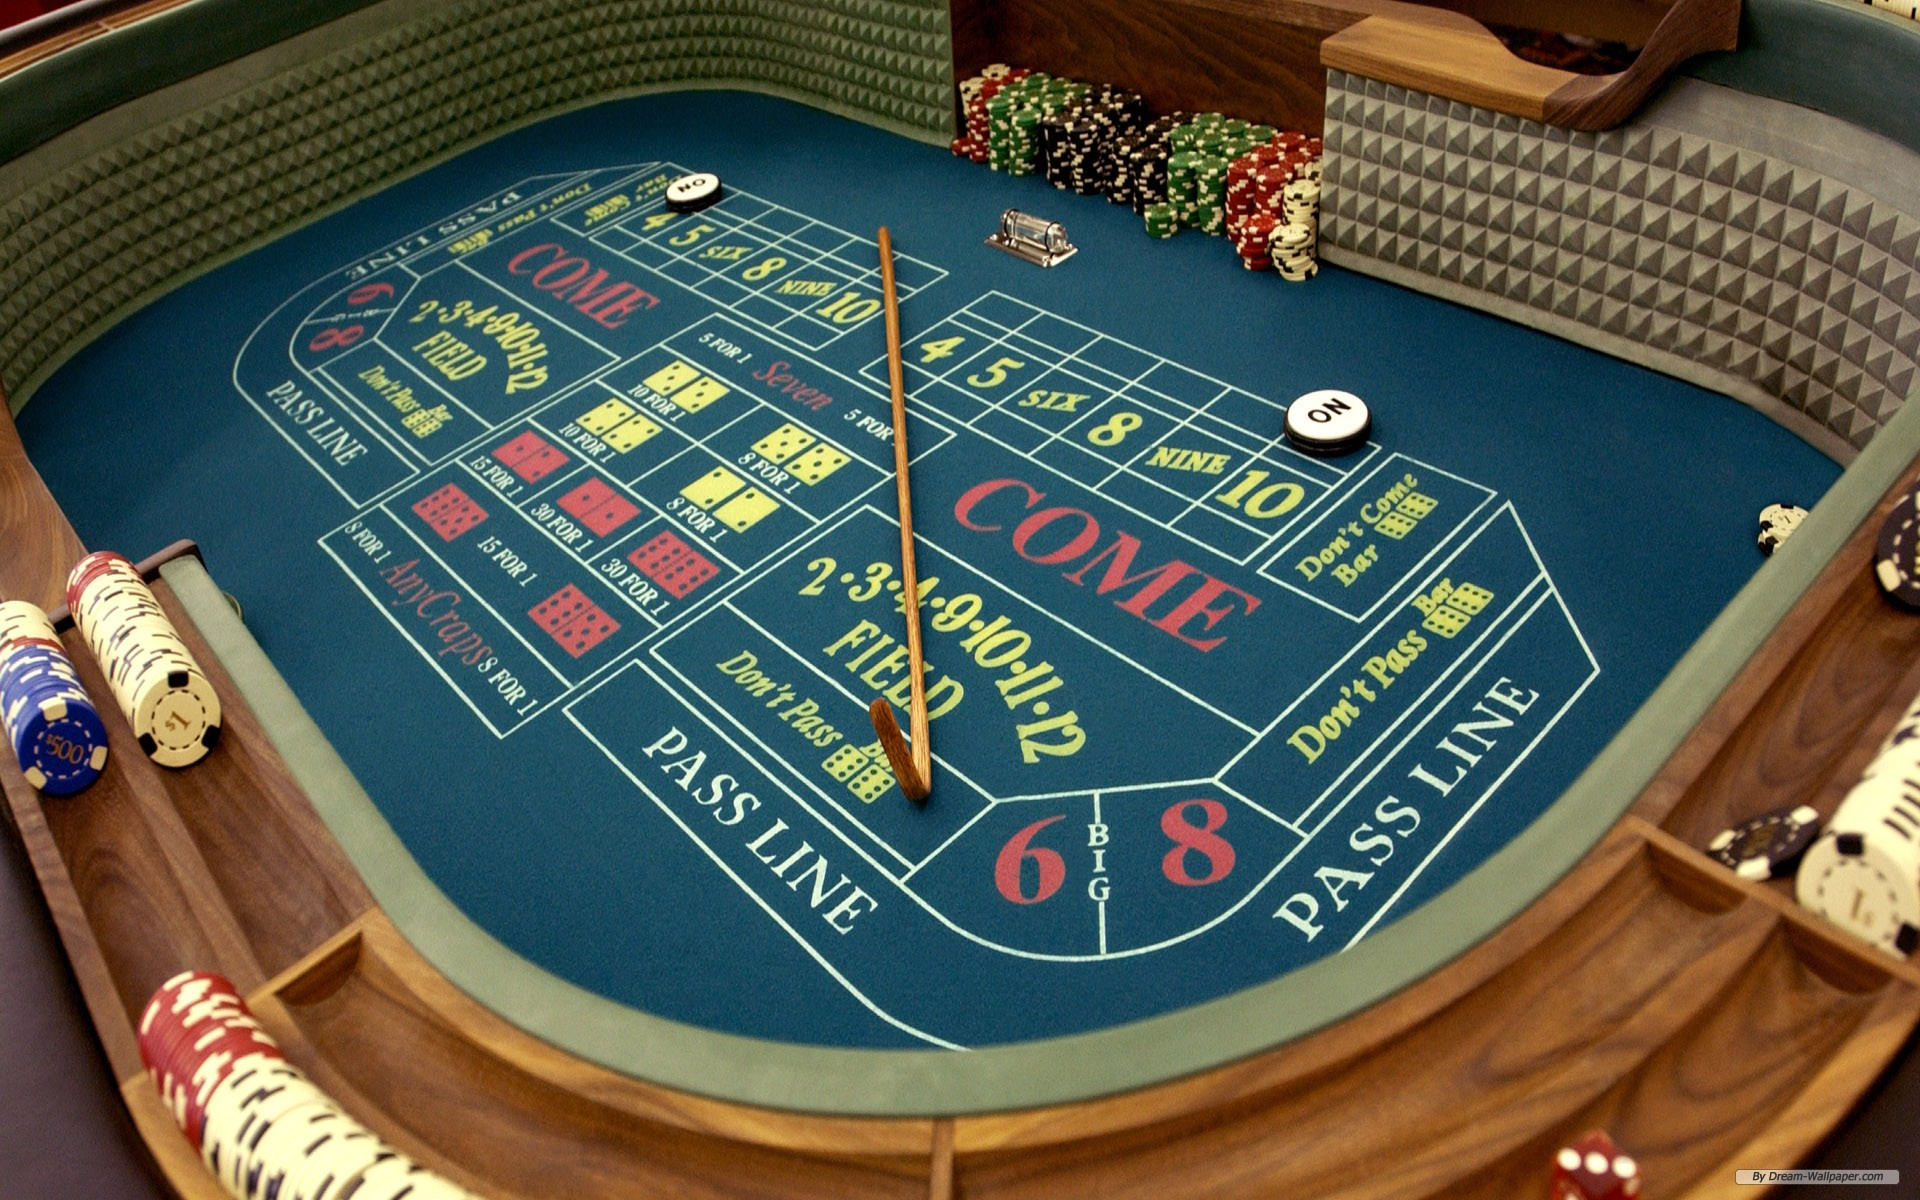 It's The Aspect Of Extreme Casino Not Often Seen